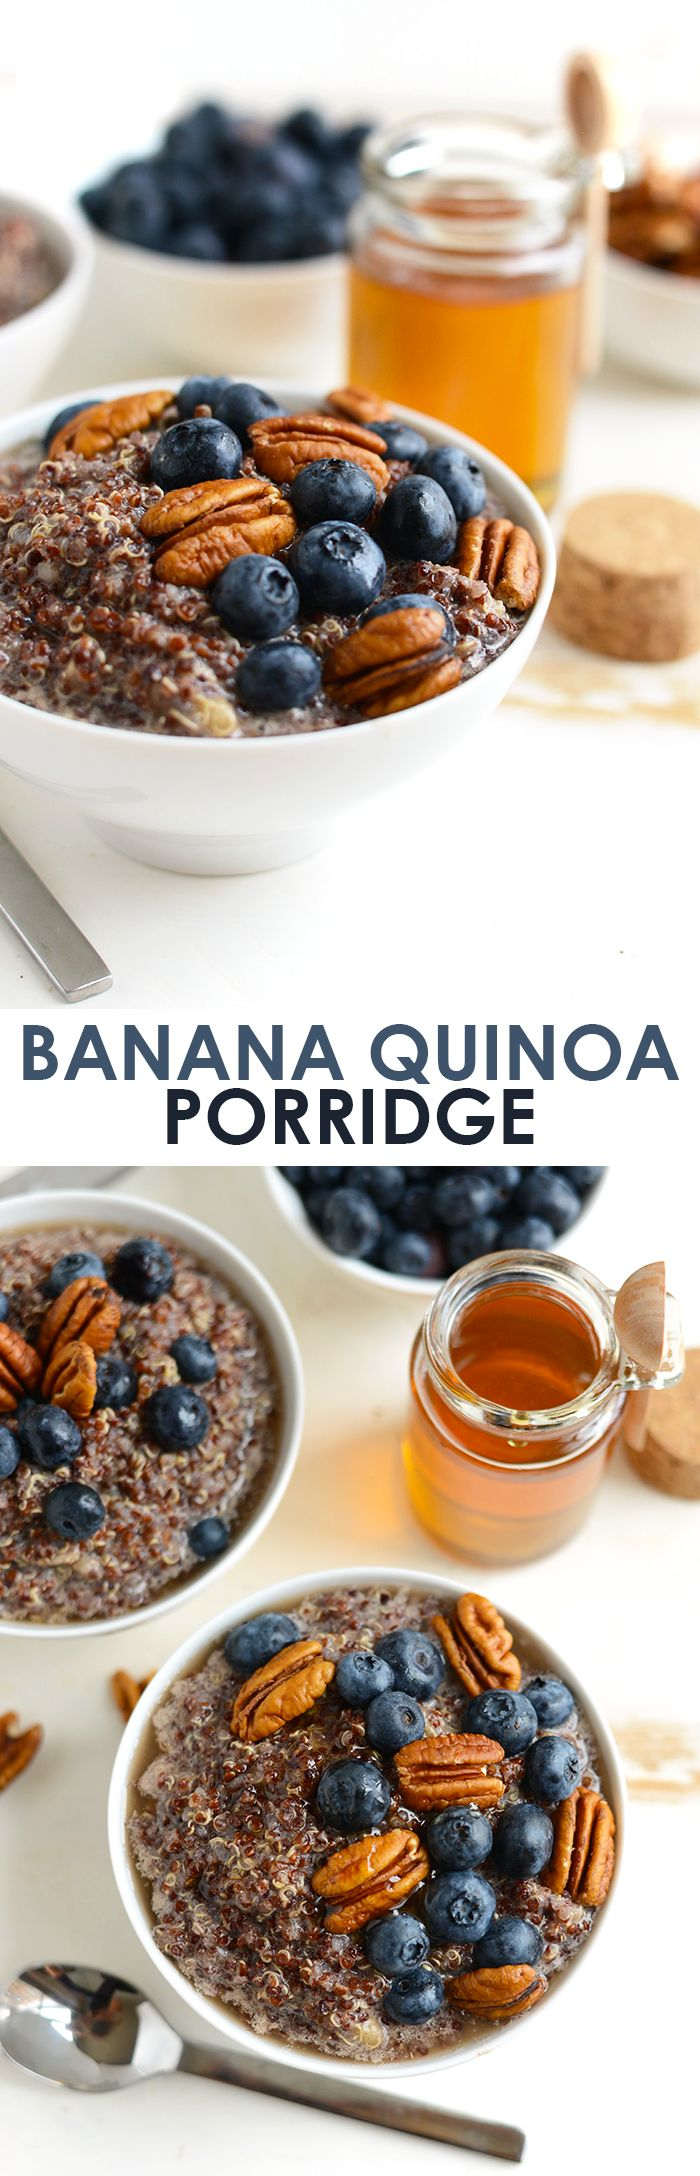 Mix up your breakfast and make this delicious banana quinoa porridge for a vegan, gluten-free option that will keep you full all morning!